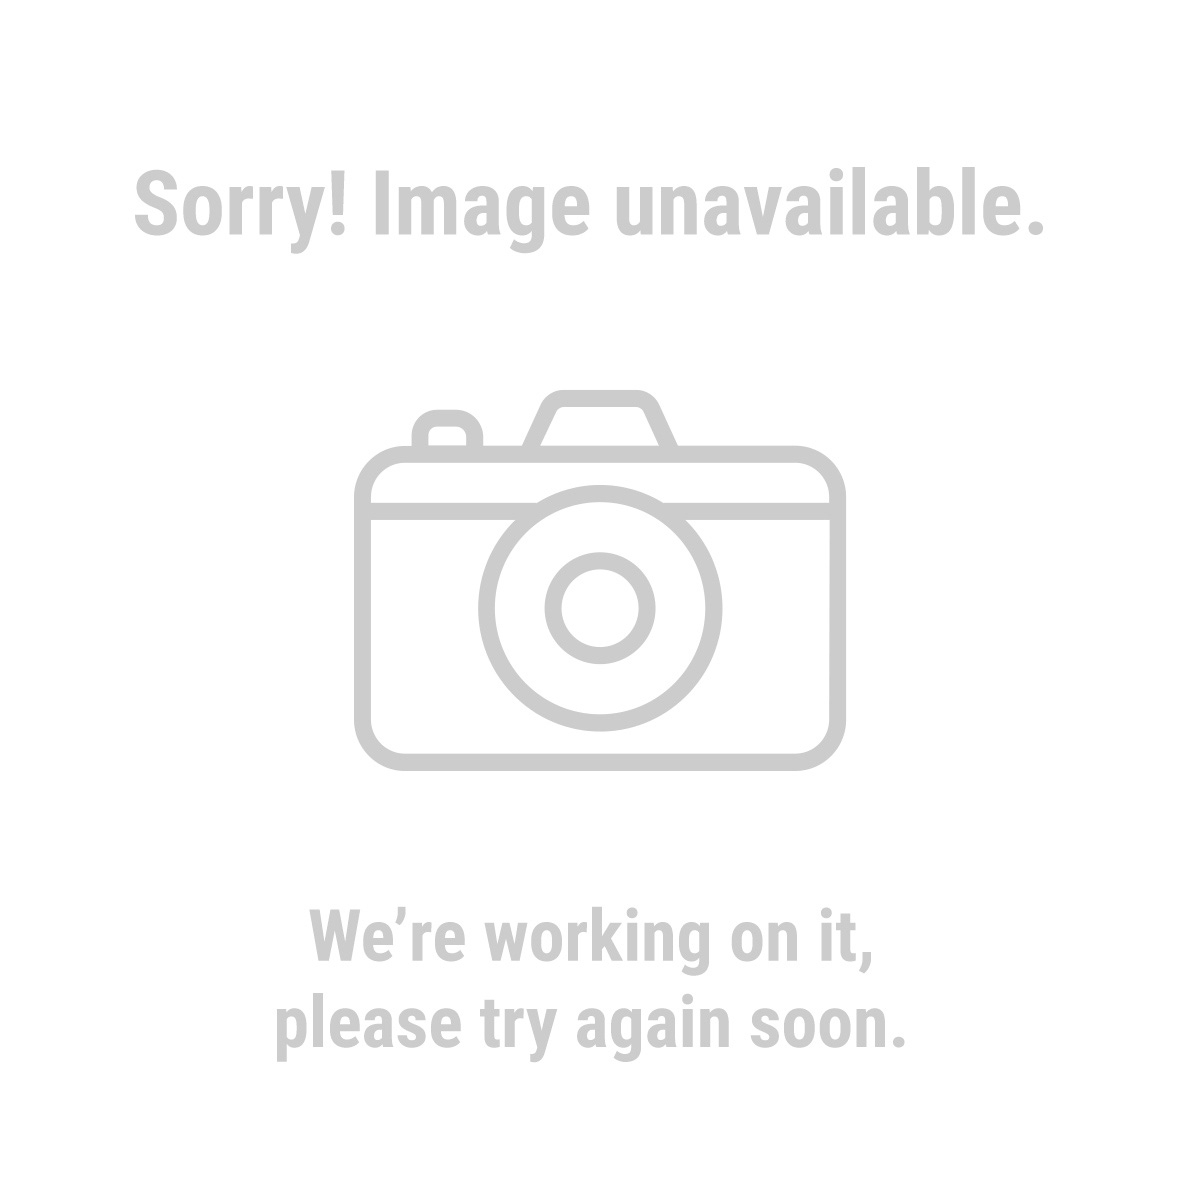 95817 Stonewash Denim Shop Apron